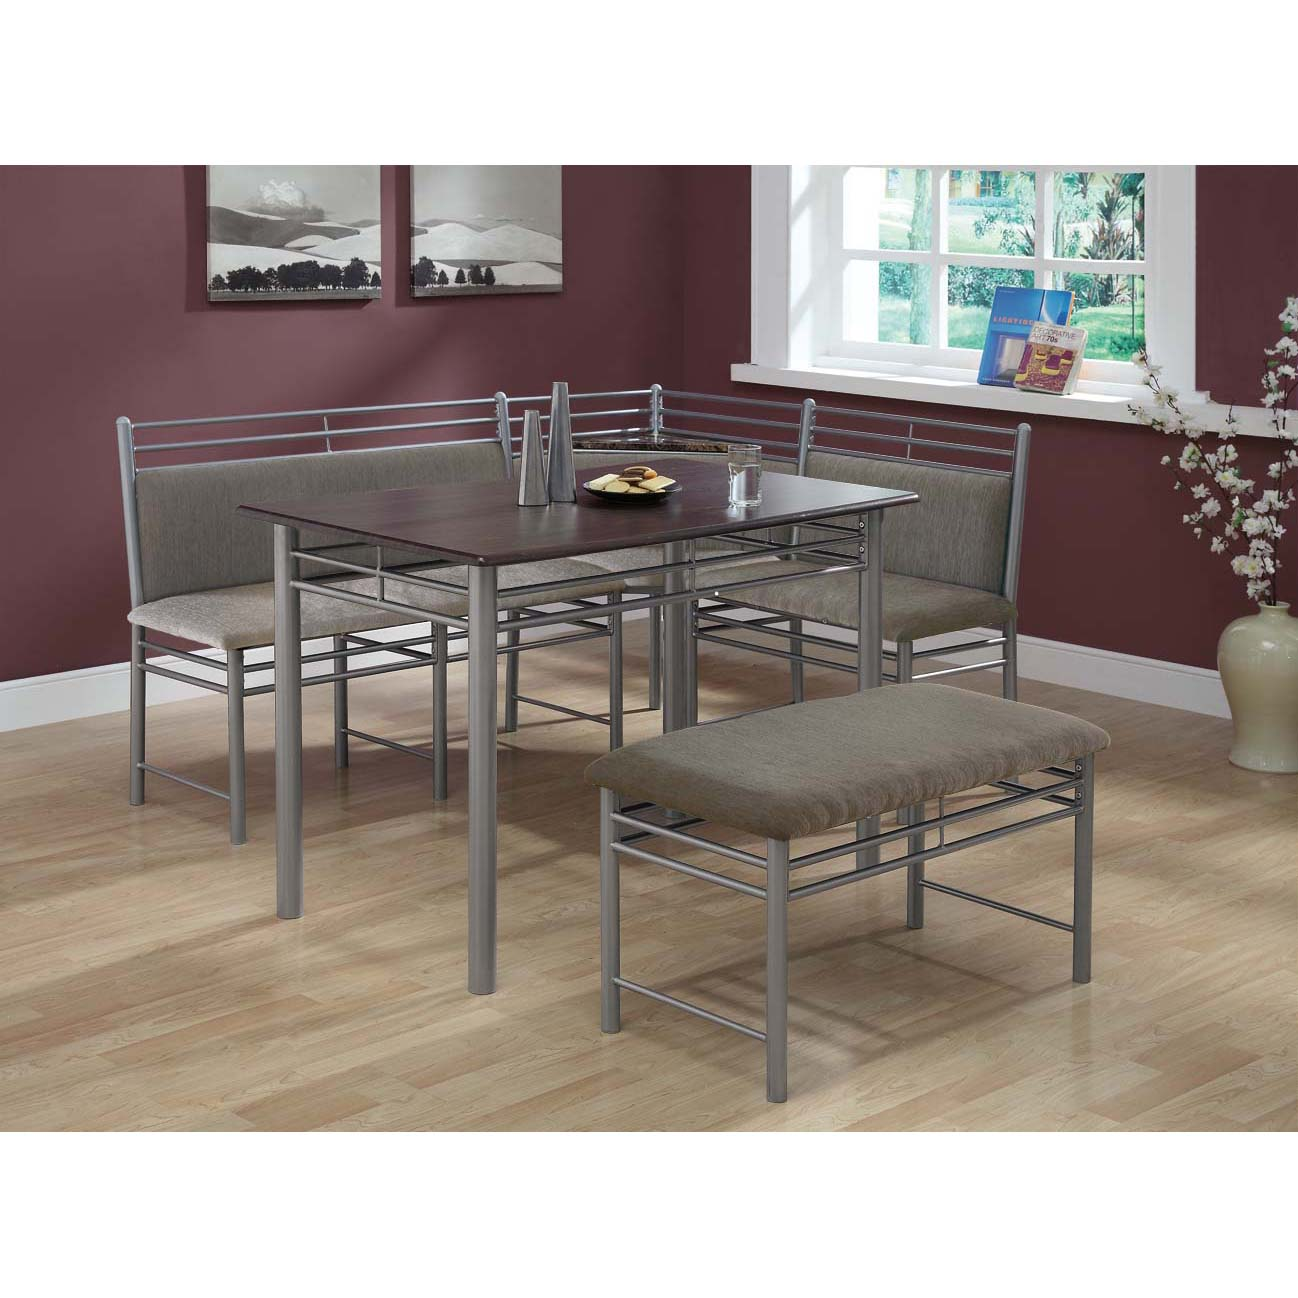 Cappuccino / Silver Metal Corner 3-piece Dining Set